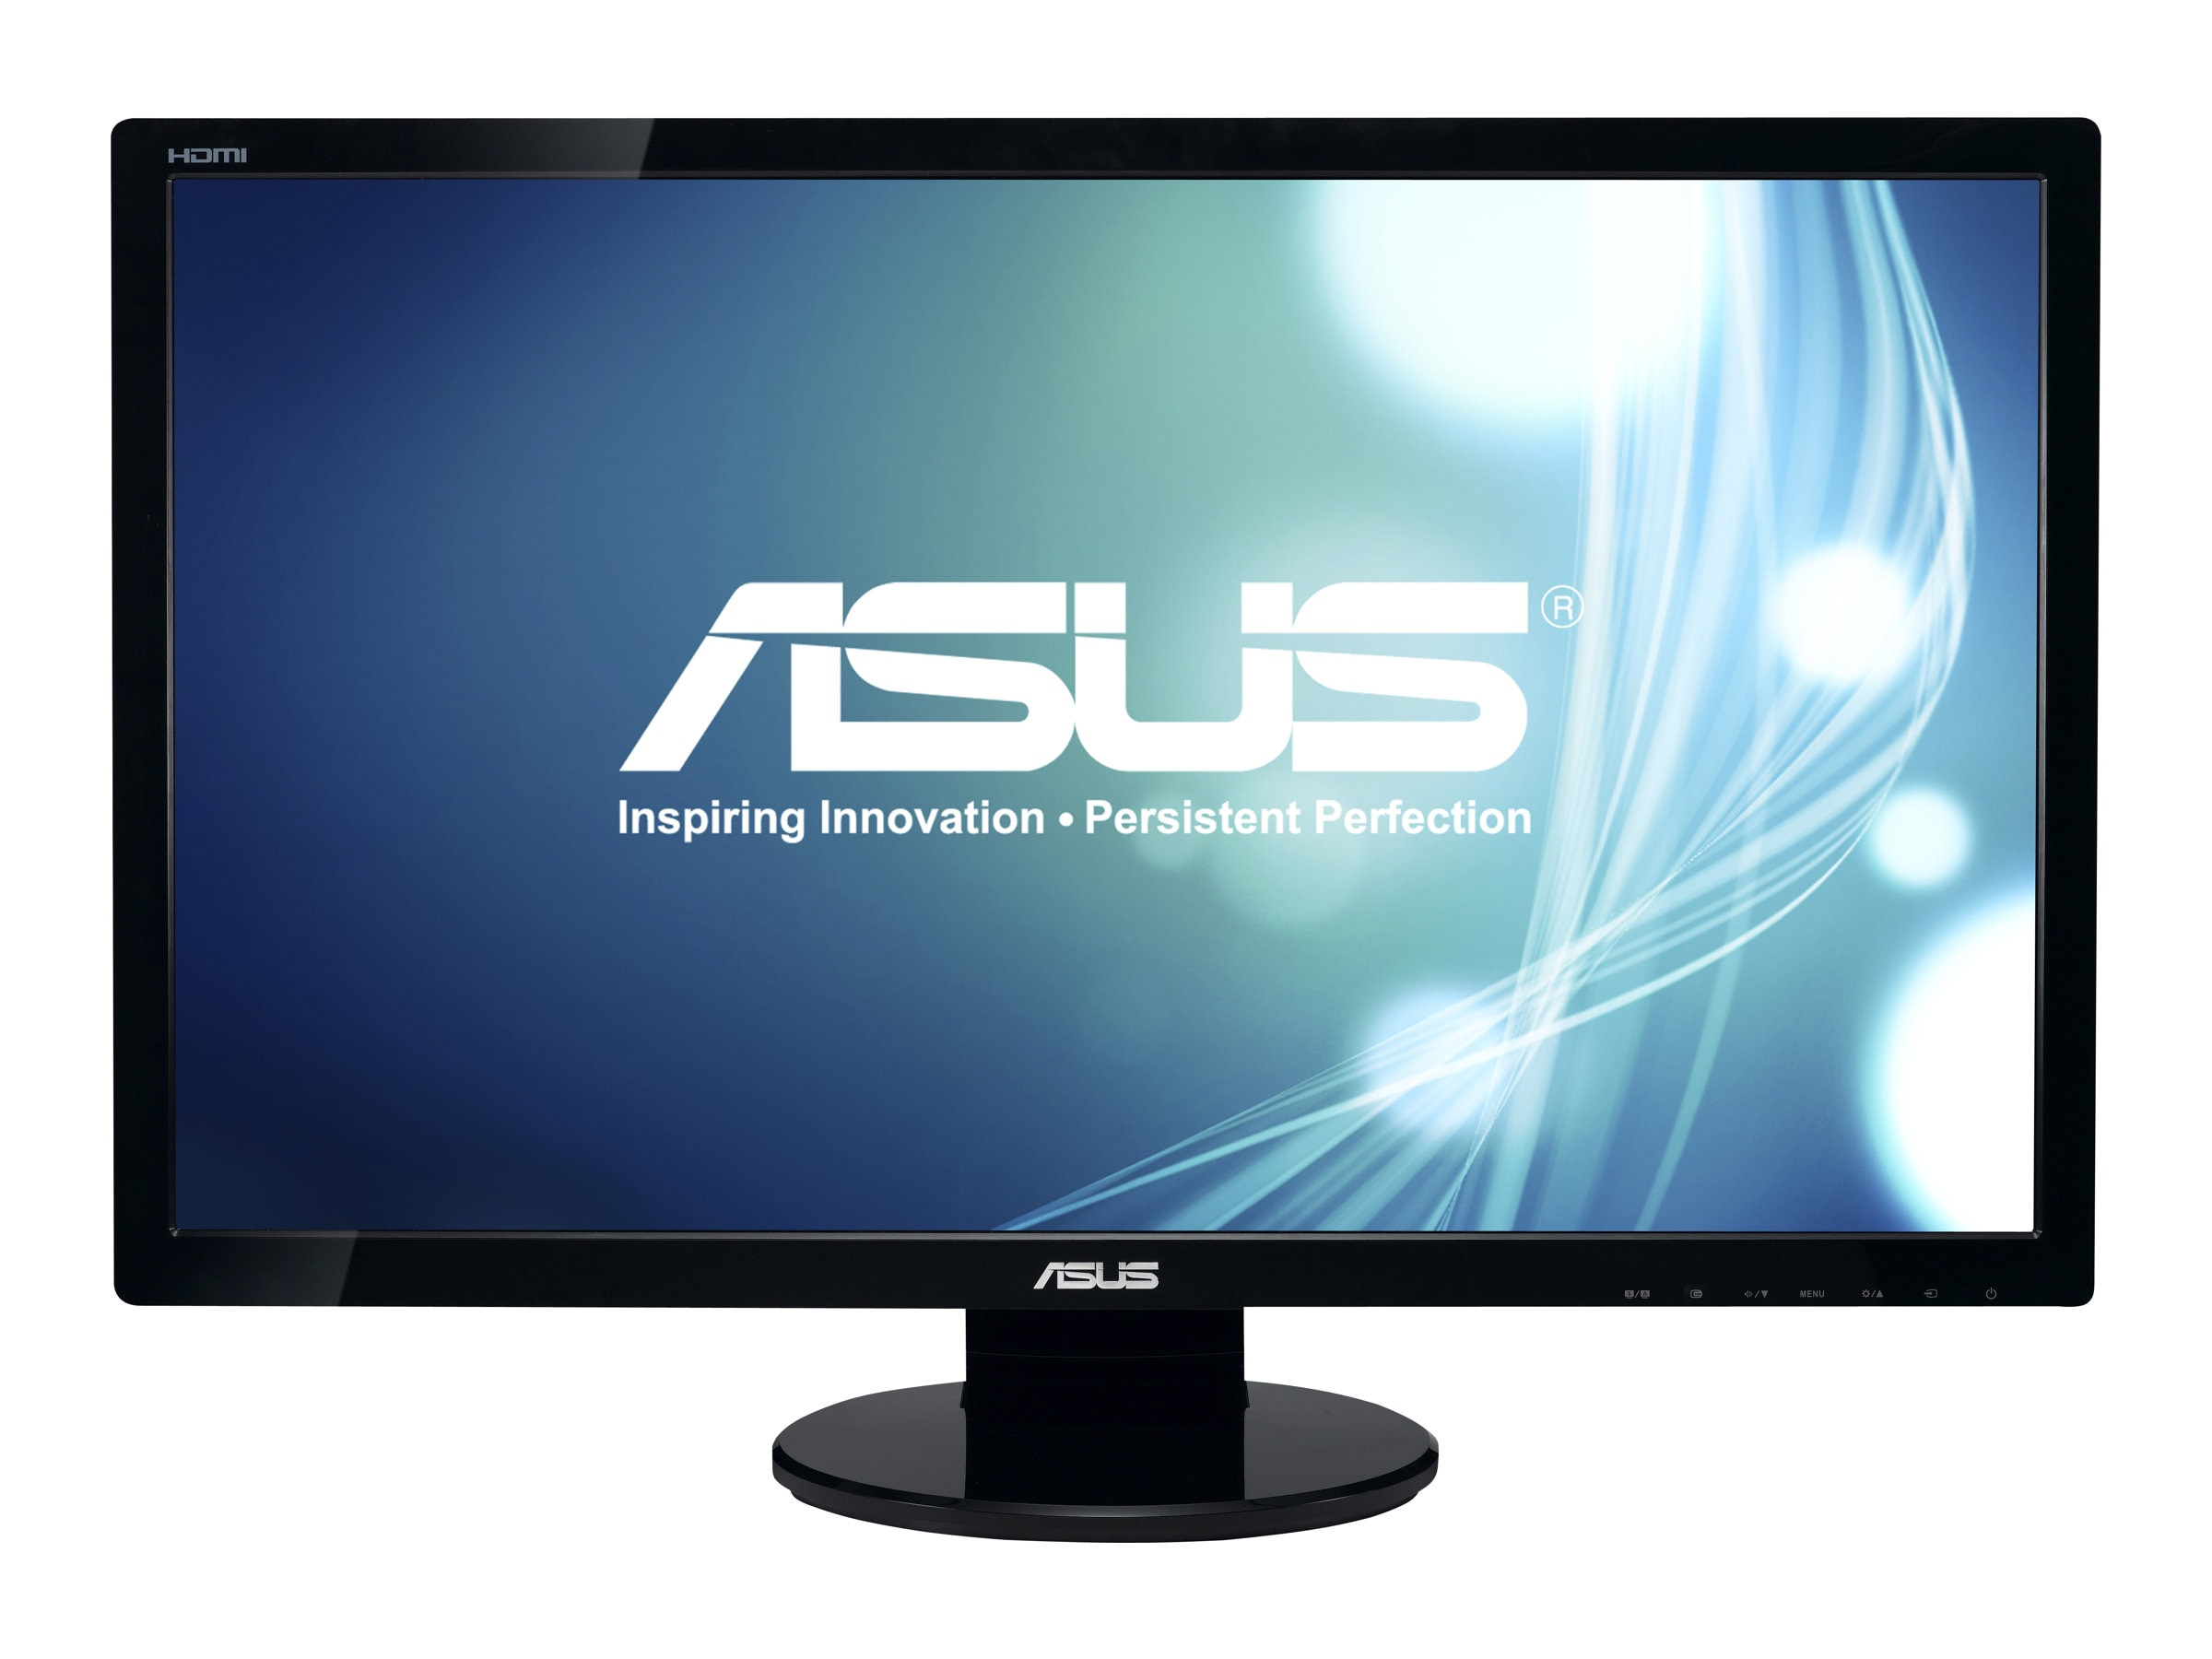 Asus 27 VE278H Full HD LED-LCD Monitor, Black